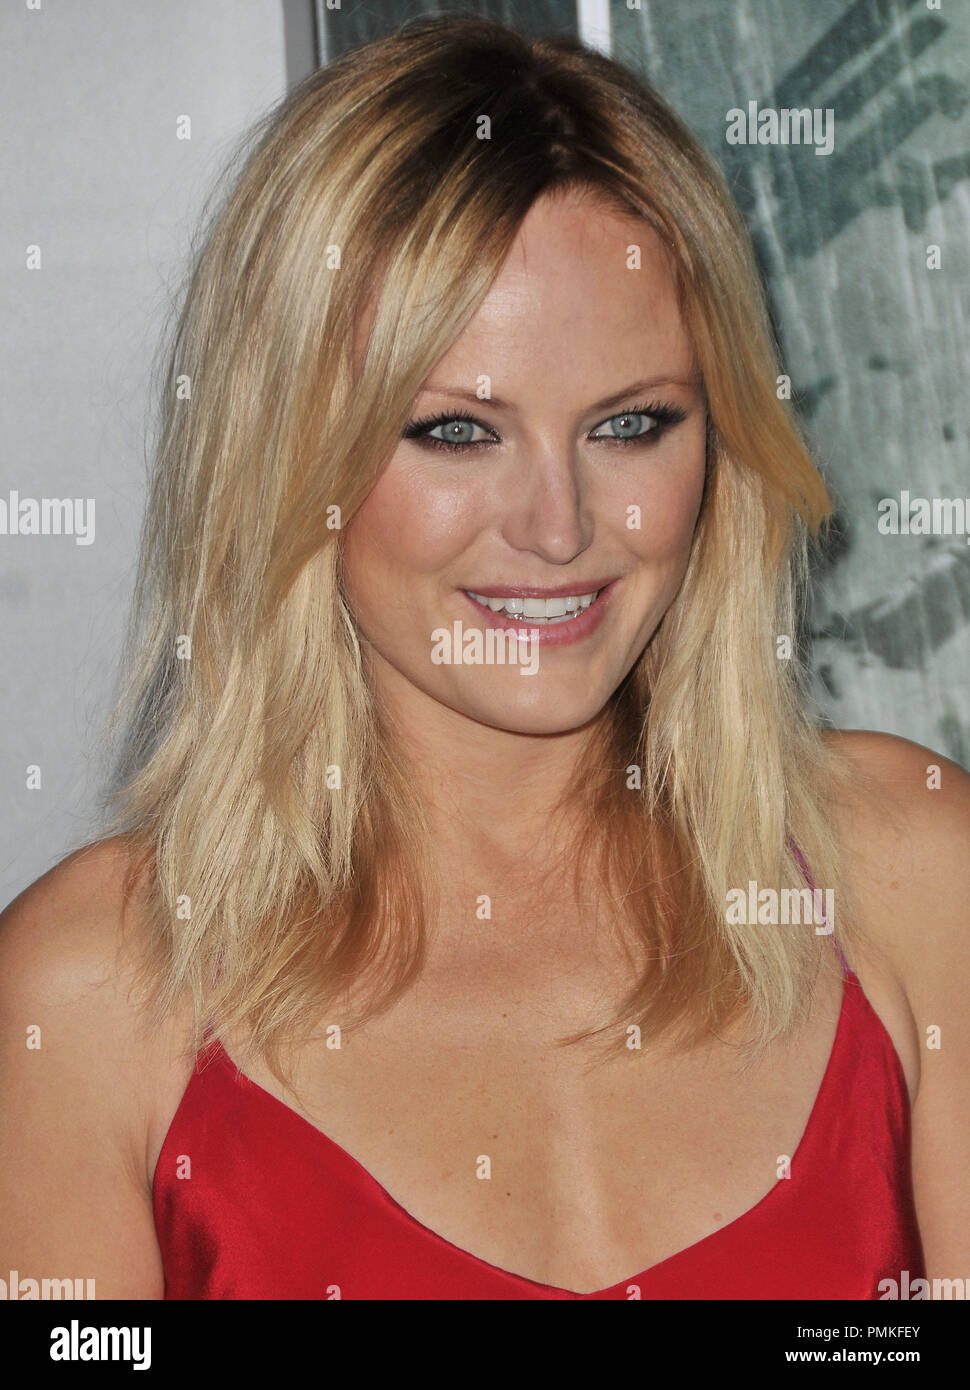 Malin Ackerman at the Los Angeles Premiere of 'Sucker Punch' held at the Grauman's Chinese Theatre in Hollywood, CA. The event took place on Wednesday, March 23, 2011. Photo by PRPP_Pacific Rim Photo Press / PictureLux - Stock Image